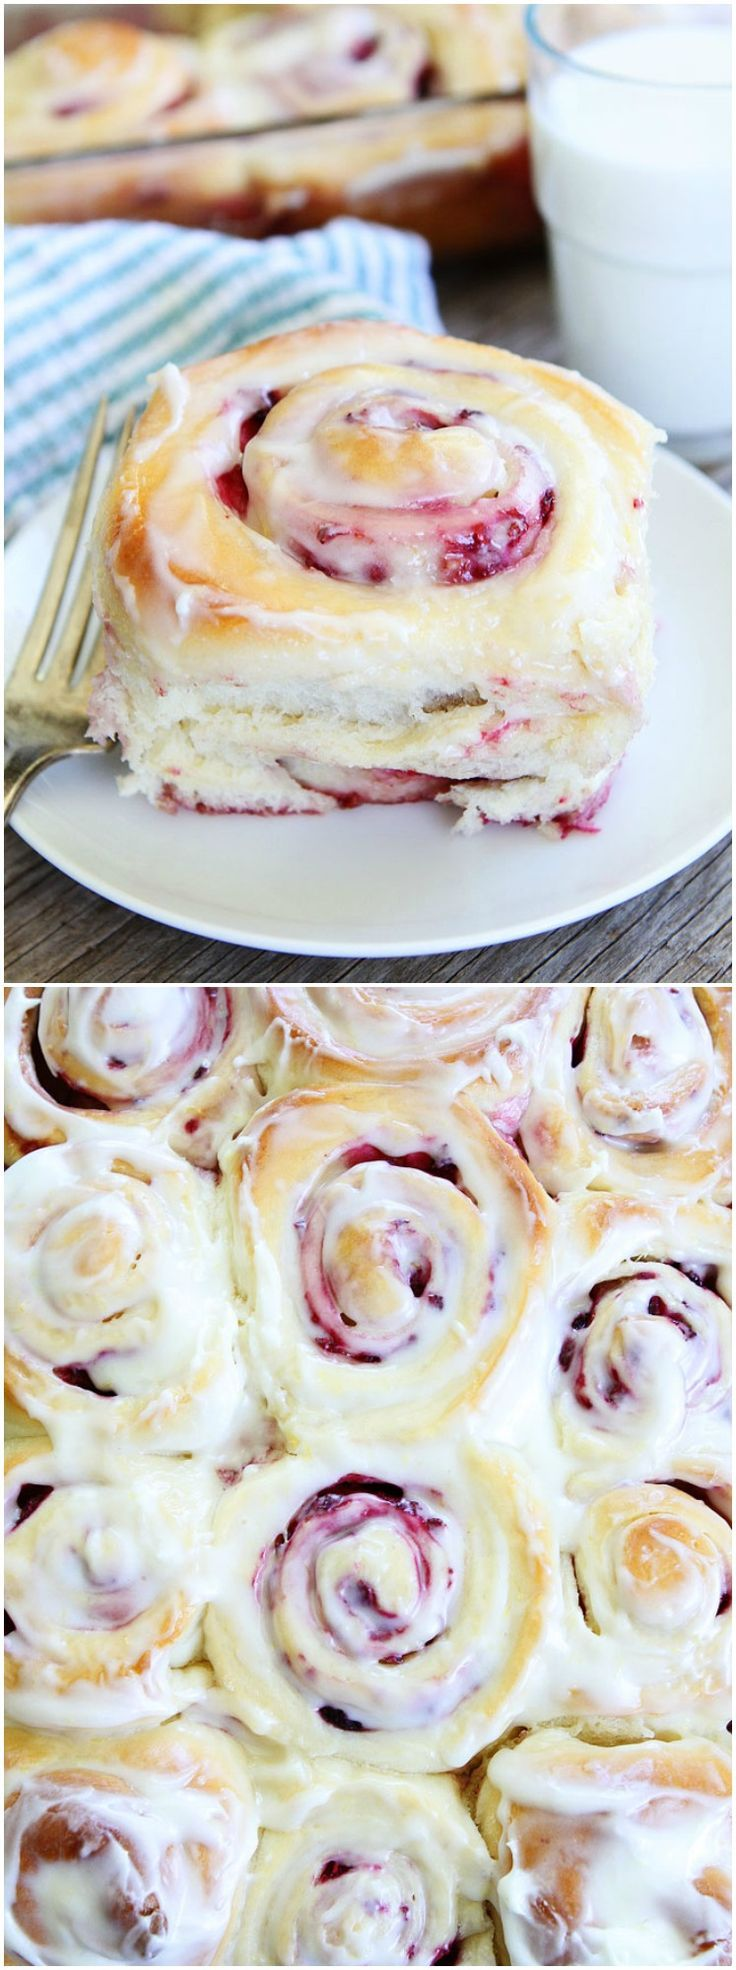 Love these soft and sweet yeast rolls! The raspberry filling and cream cheese frosting are amazing! A great treat for Valentine's Day!